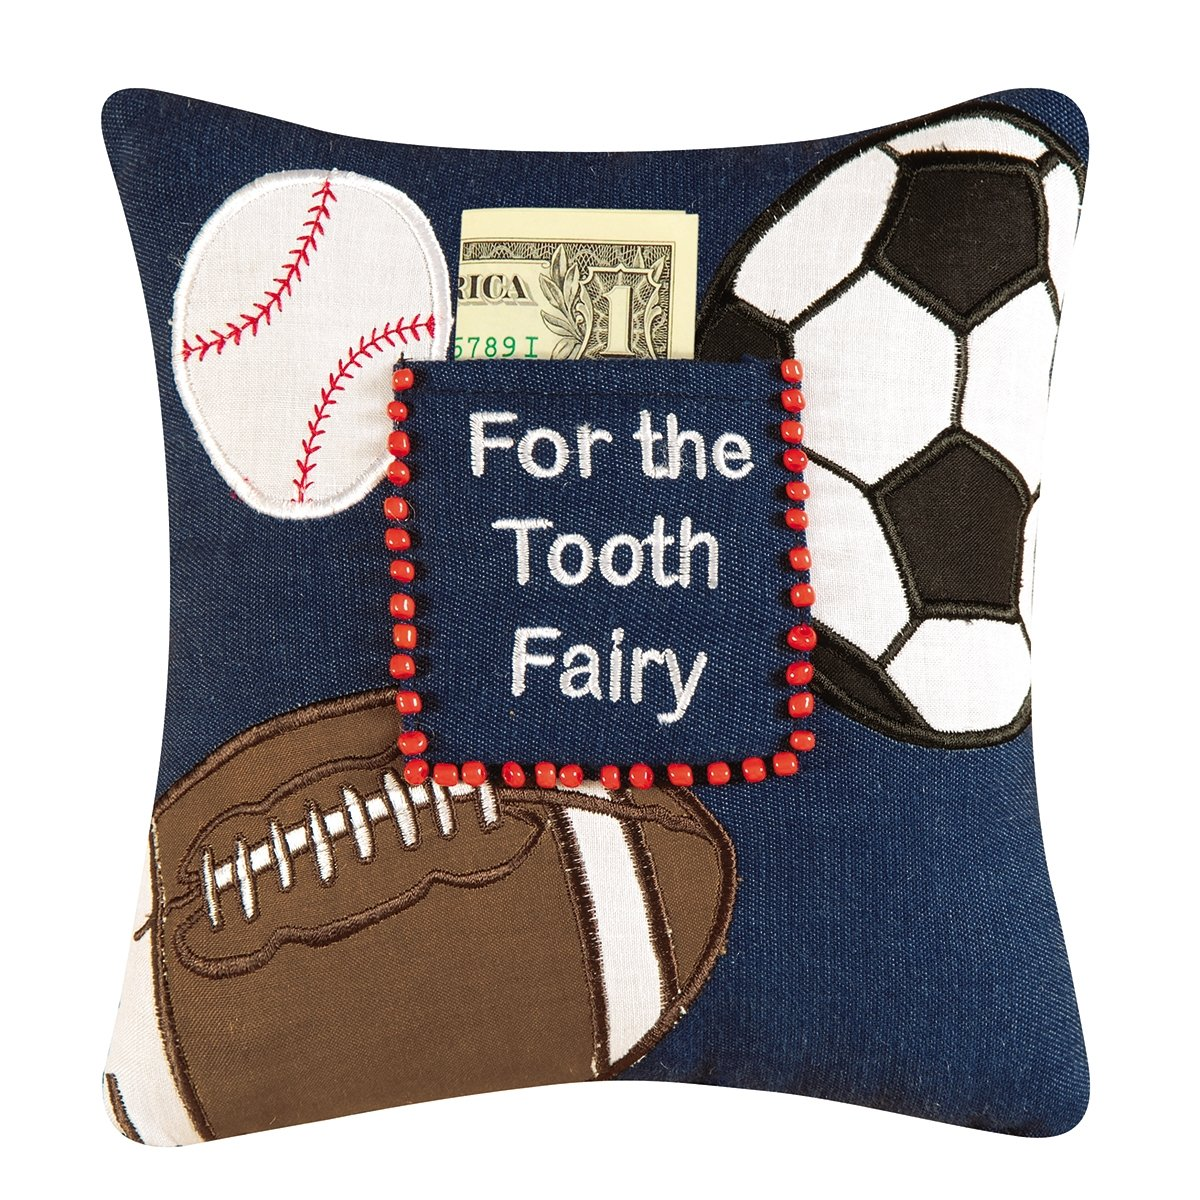 C&F Home 8'' x 8'' Saying Pillow w/Pocket, Tooth Fairy